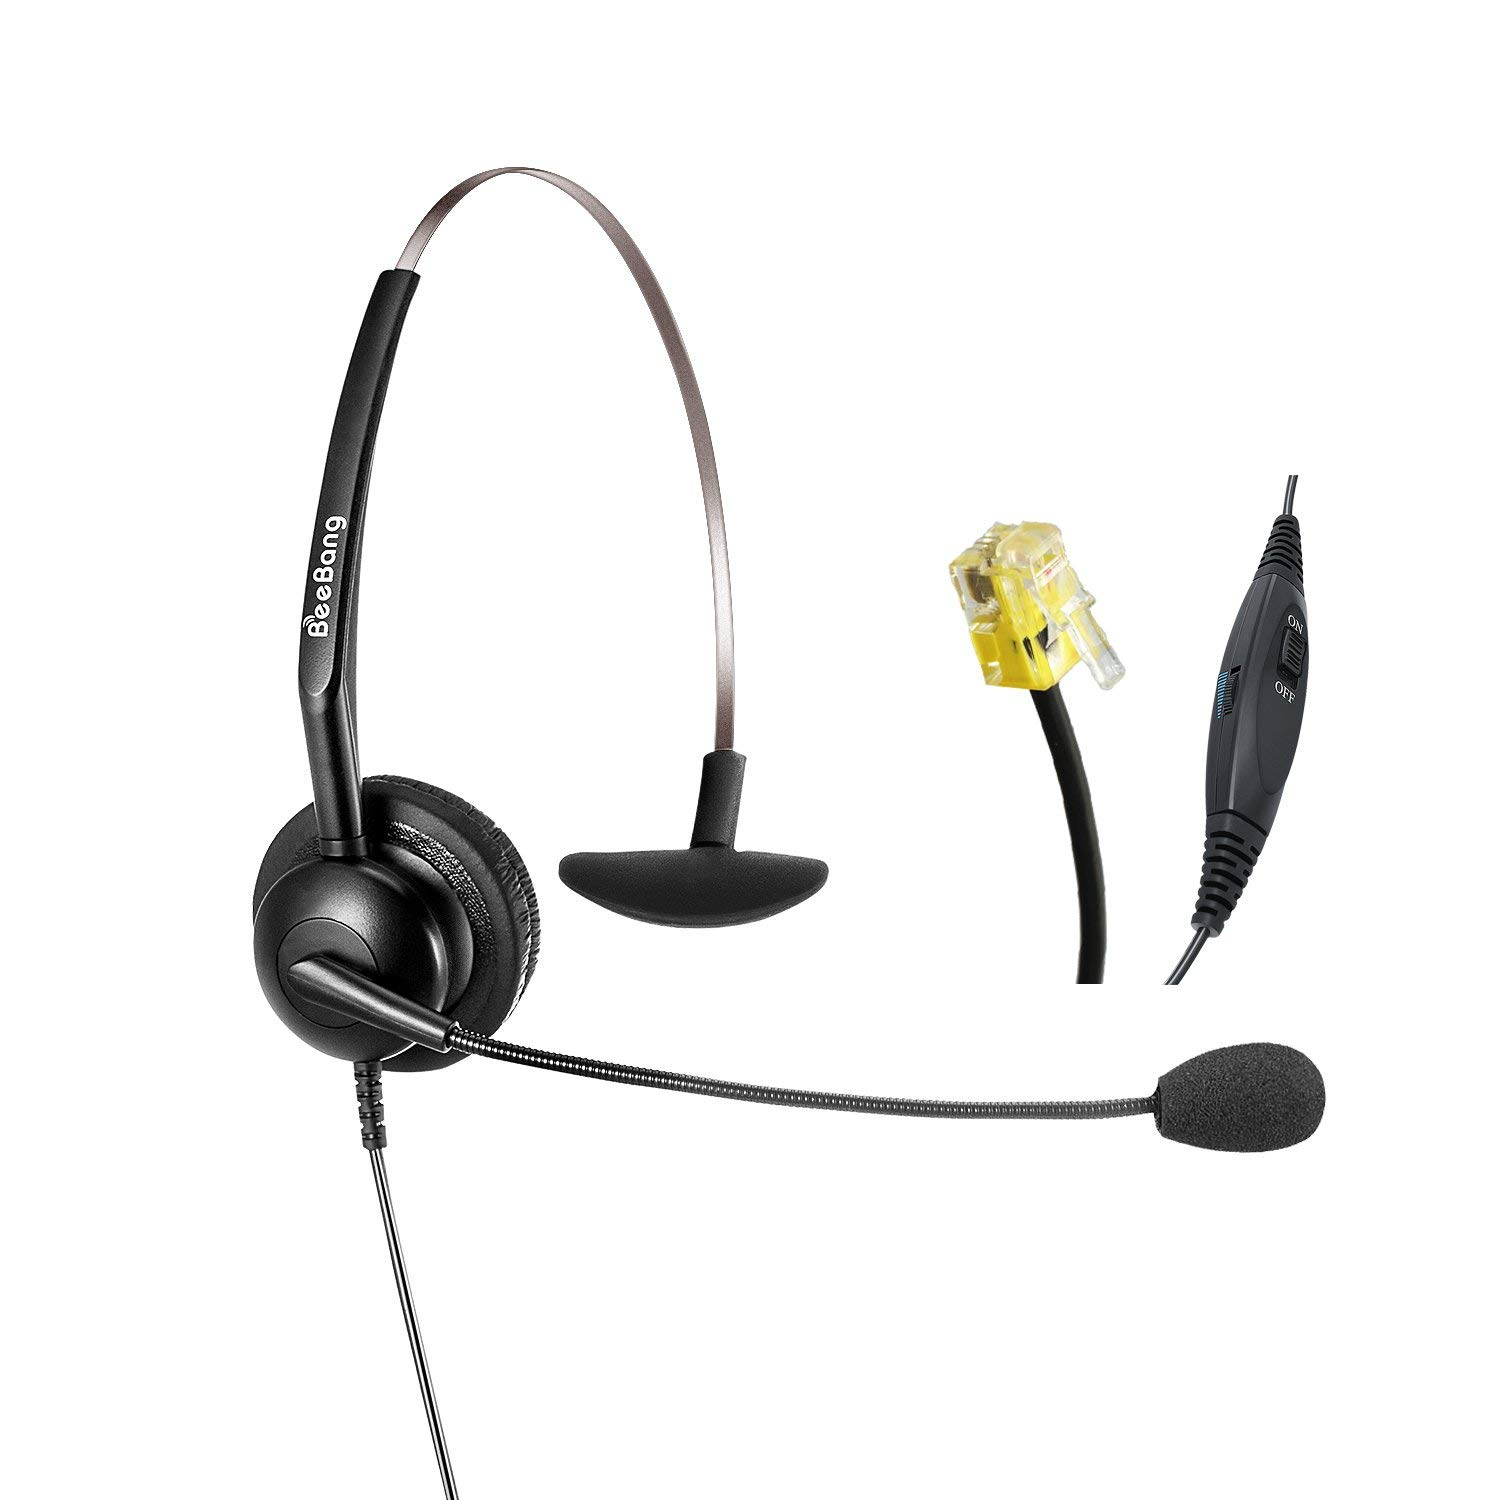 Cheap Phone Headset For Landline Find Phone Headset For Landline Deals On Line At Alibaba Com